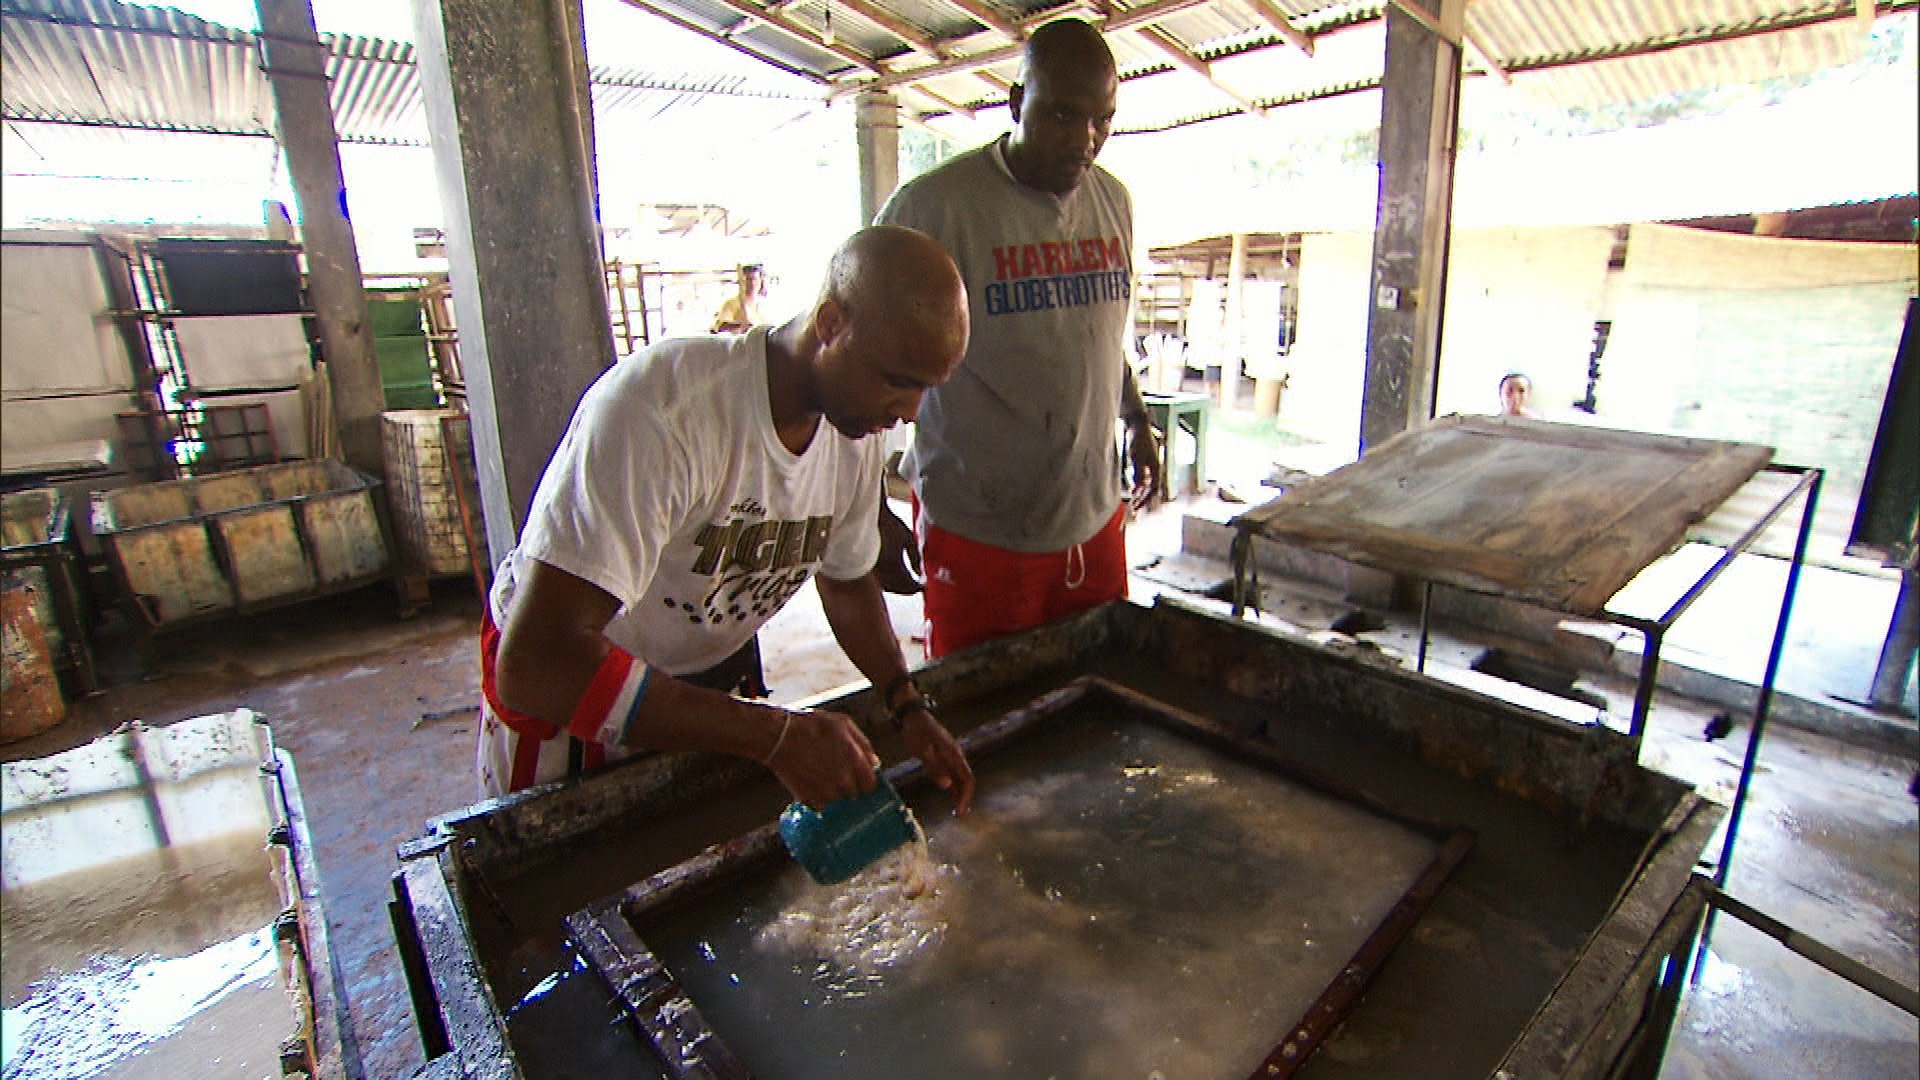 Making paper in Sri Lanka in Season 24 Episode 6